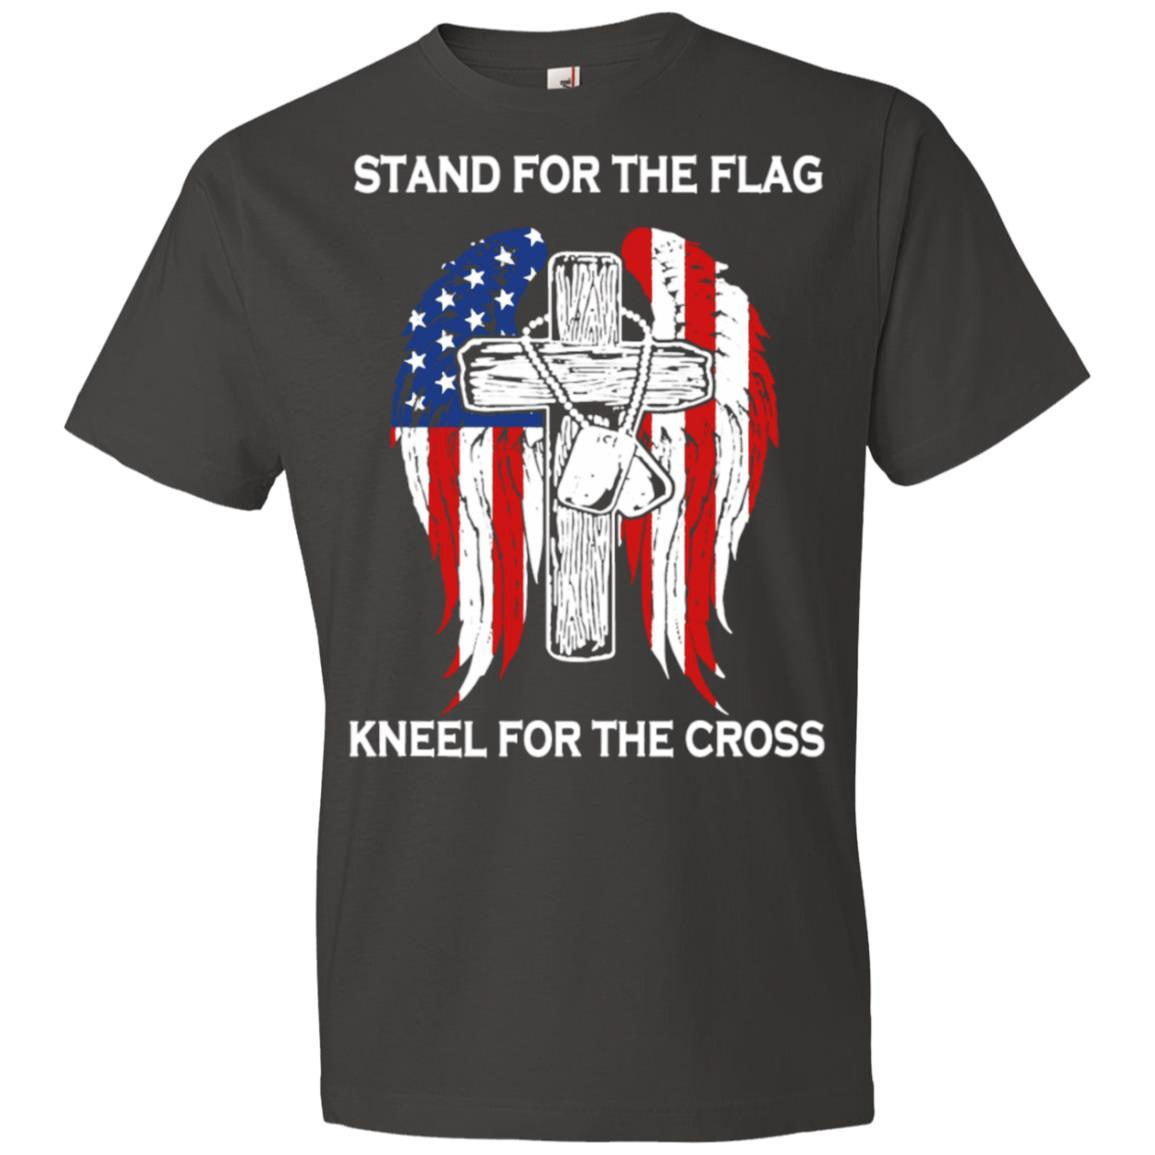 Stand For The Flag Kneel For The Cross - Anvil Lightweight T-Shirt Style / Color / Size